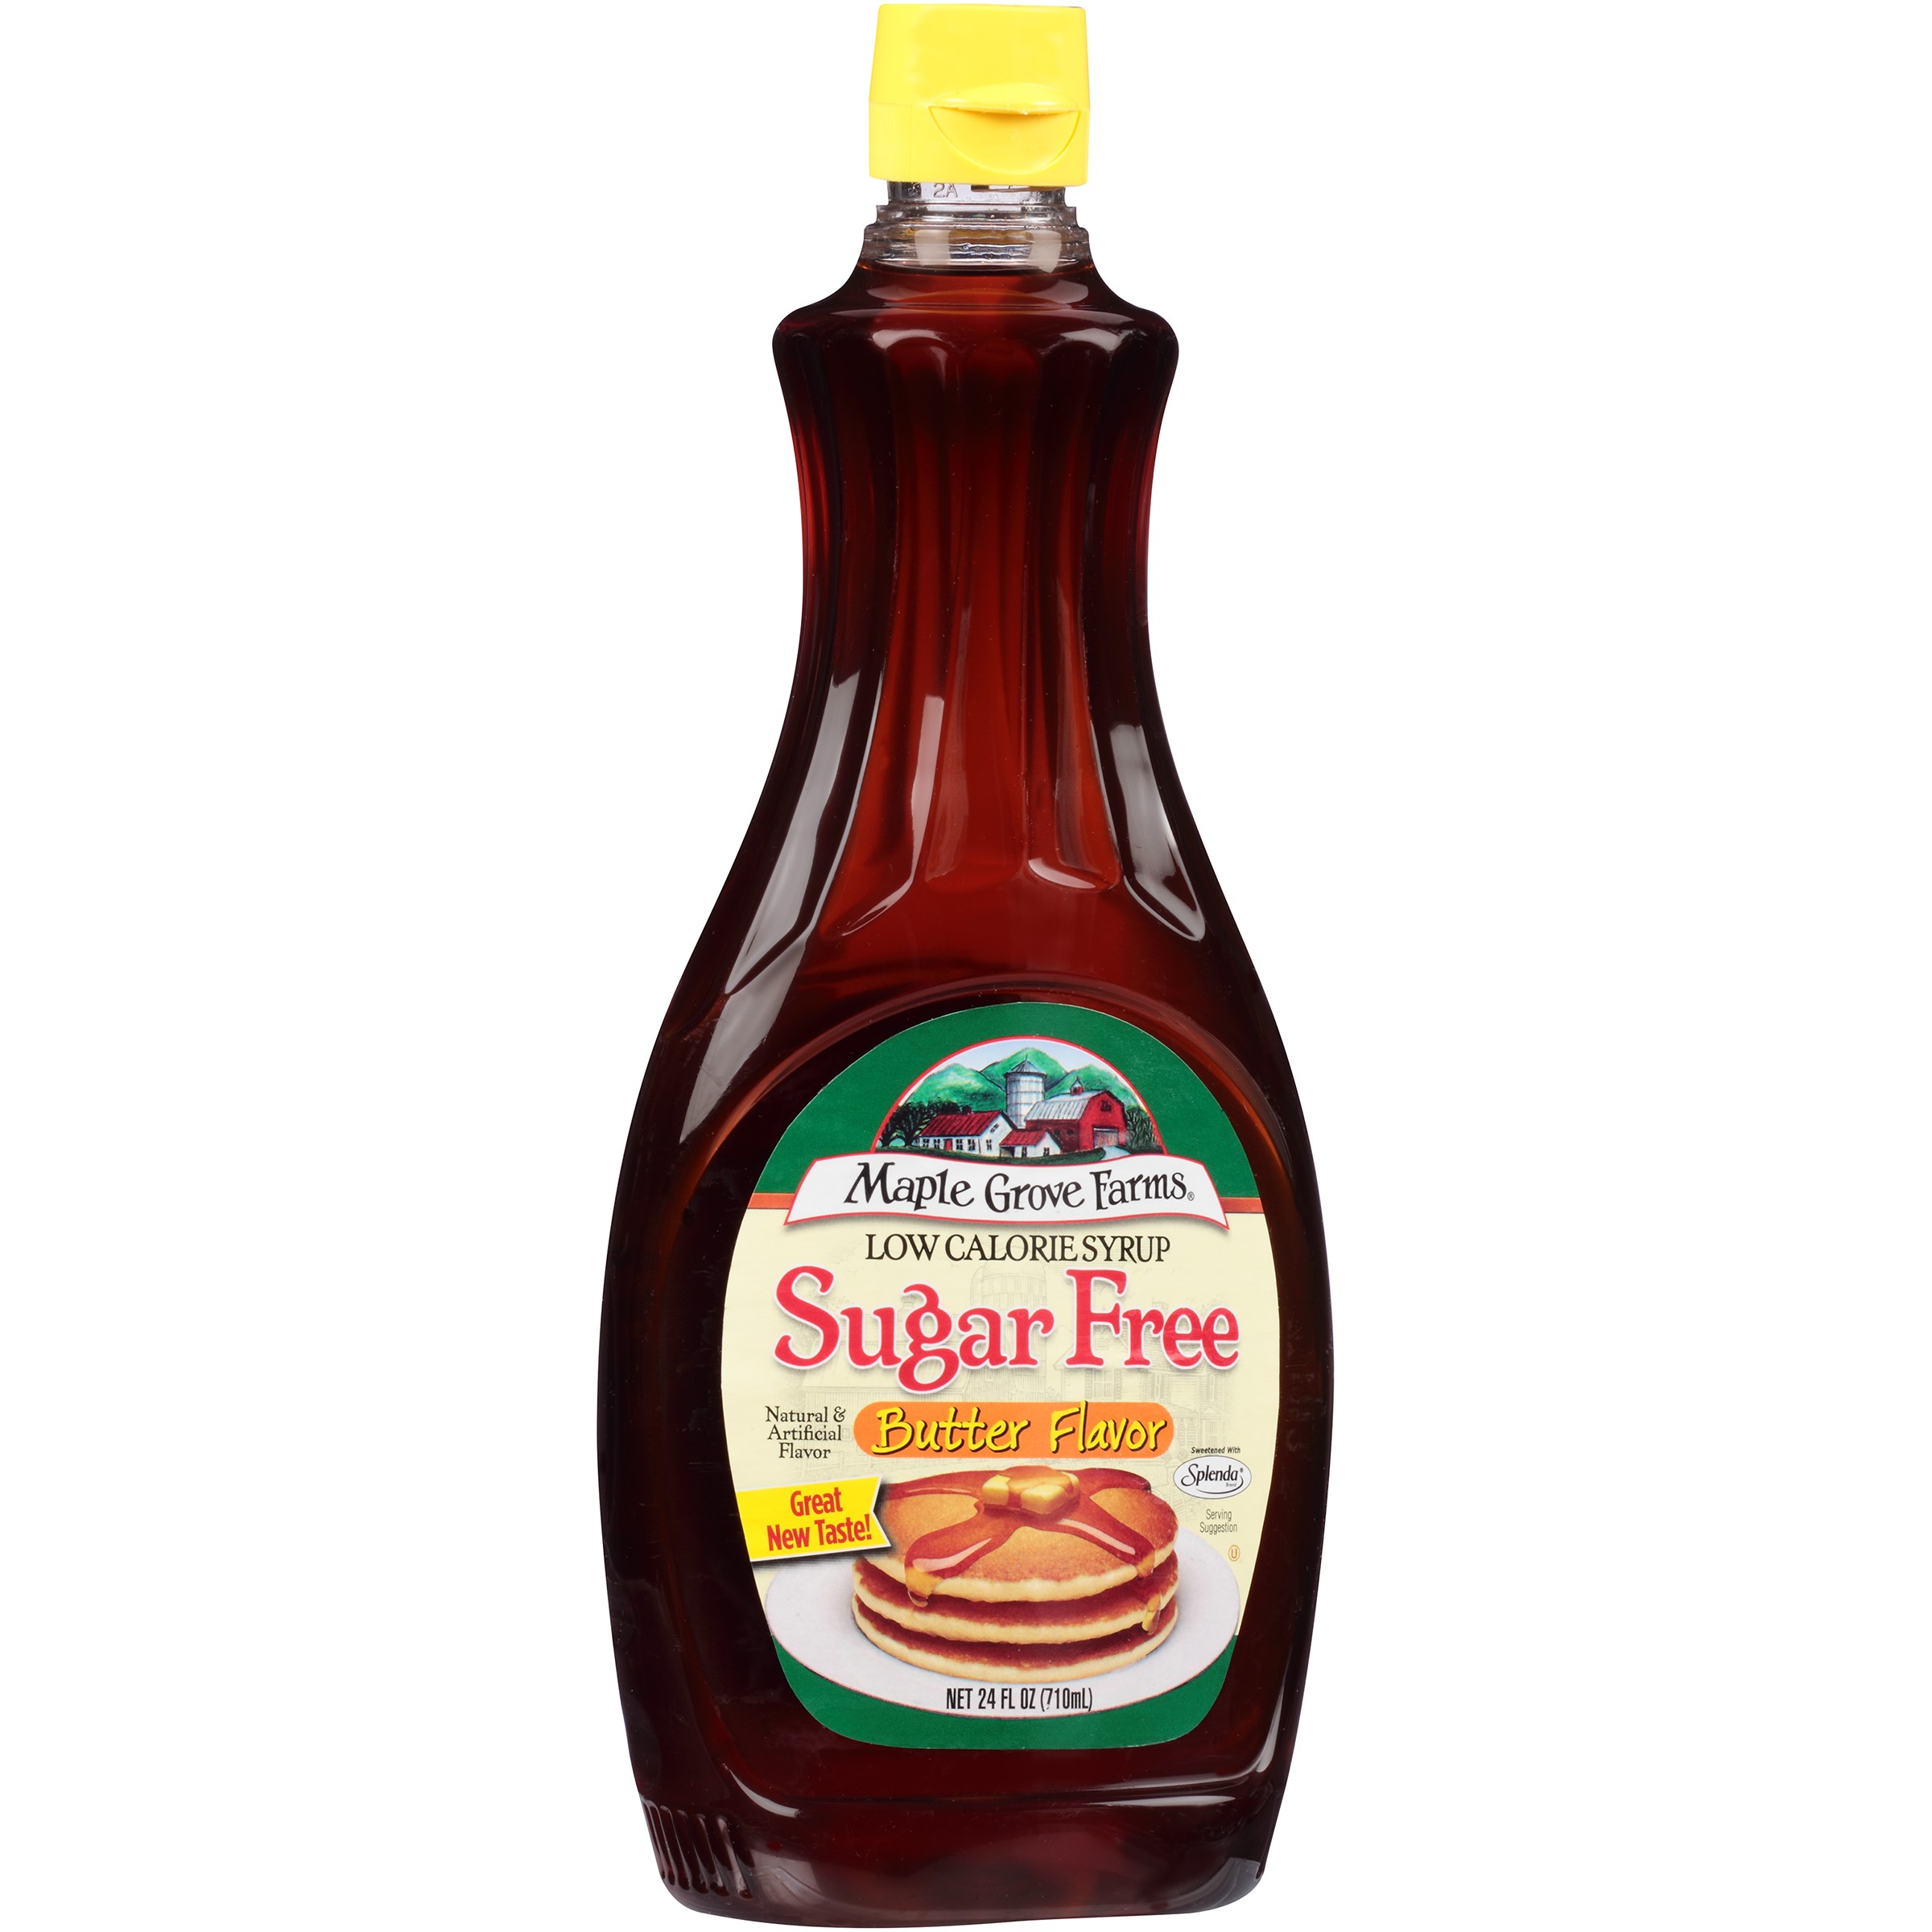 Maple Grove Farms Sugar Free Butter Flavor Syrup, 24 Oz